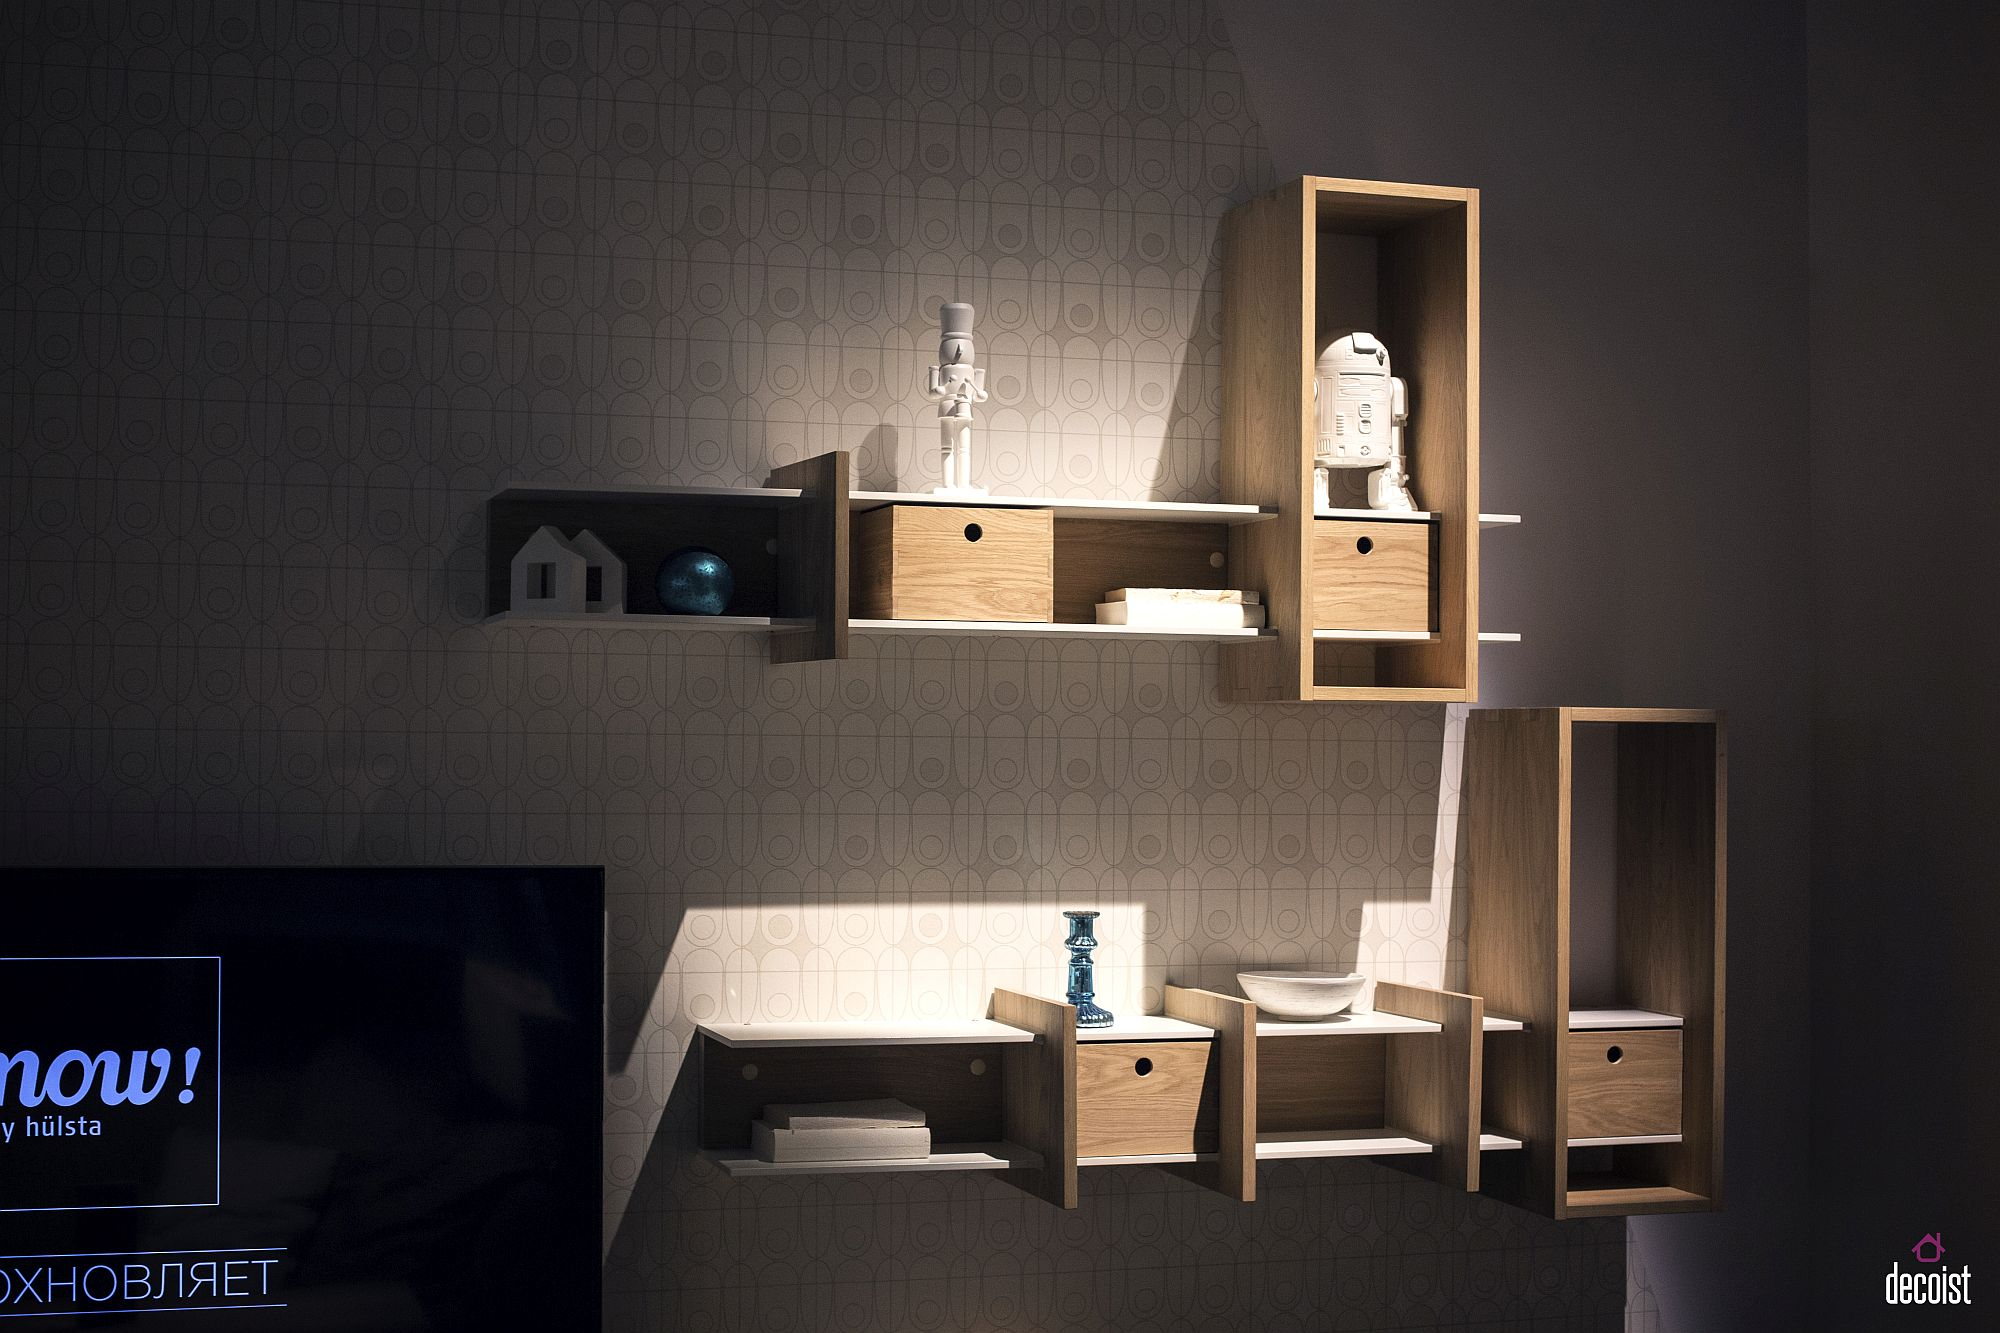 Adaptable-wooden-shelves-can-easily-switch-between-open-and-closed-aesthetic